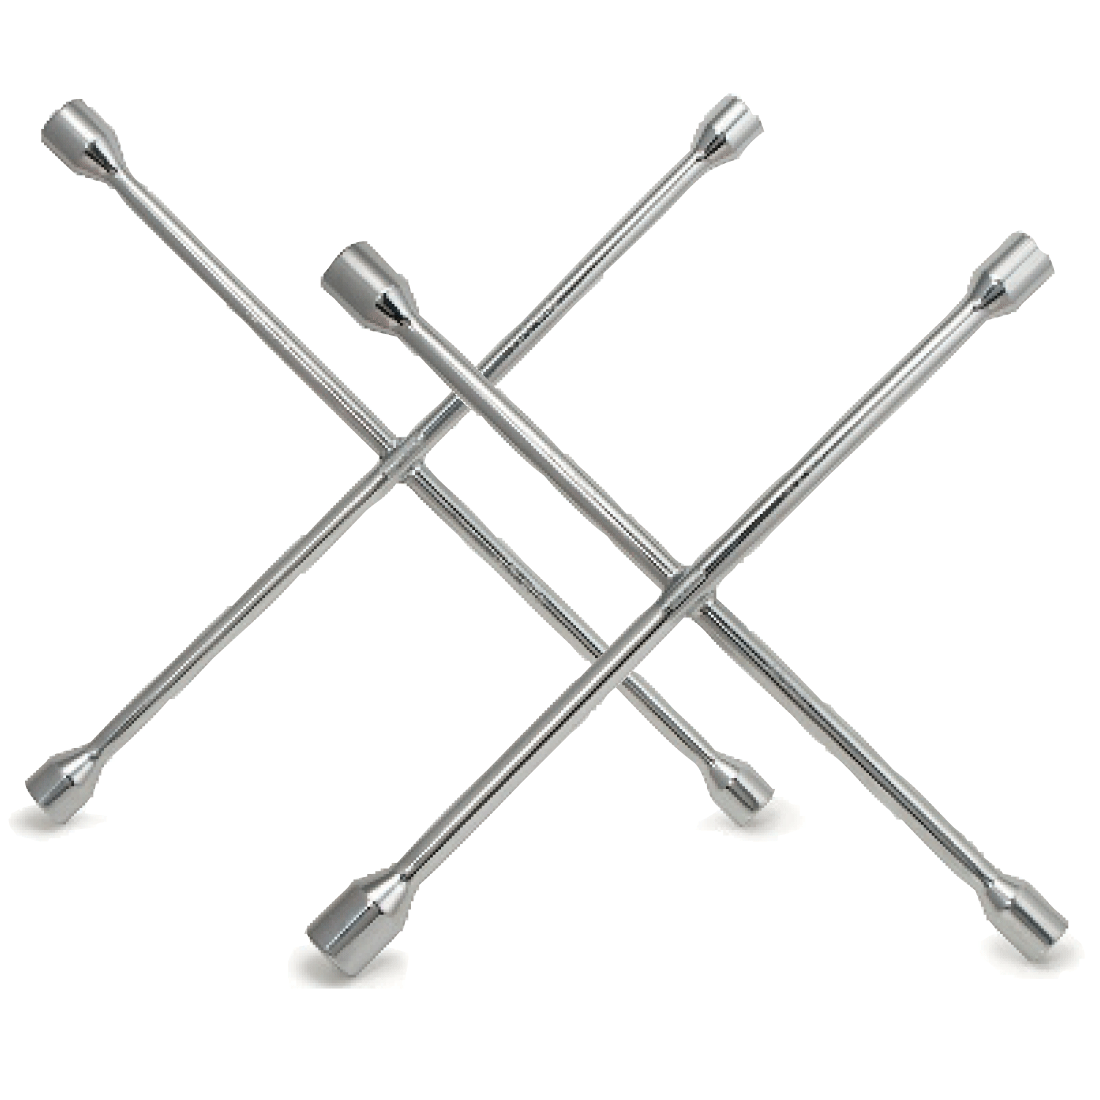 High Quality 4 Way Lug Wrenches